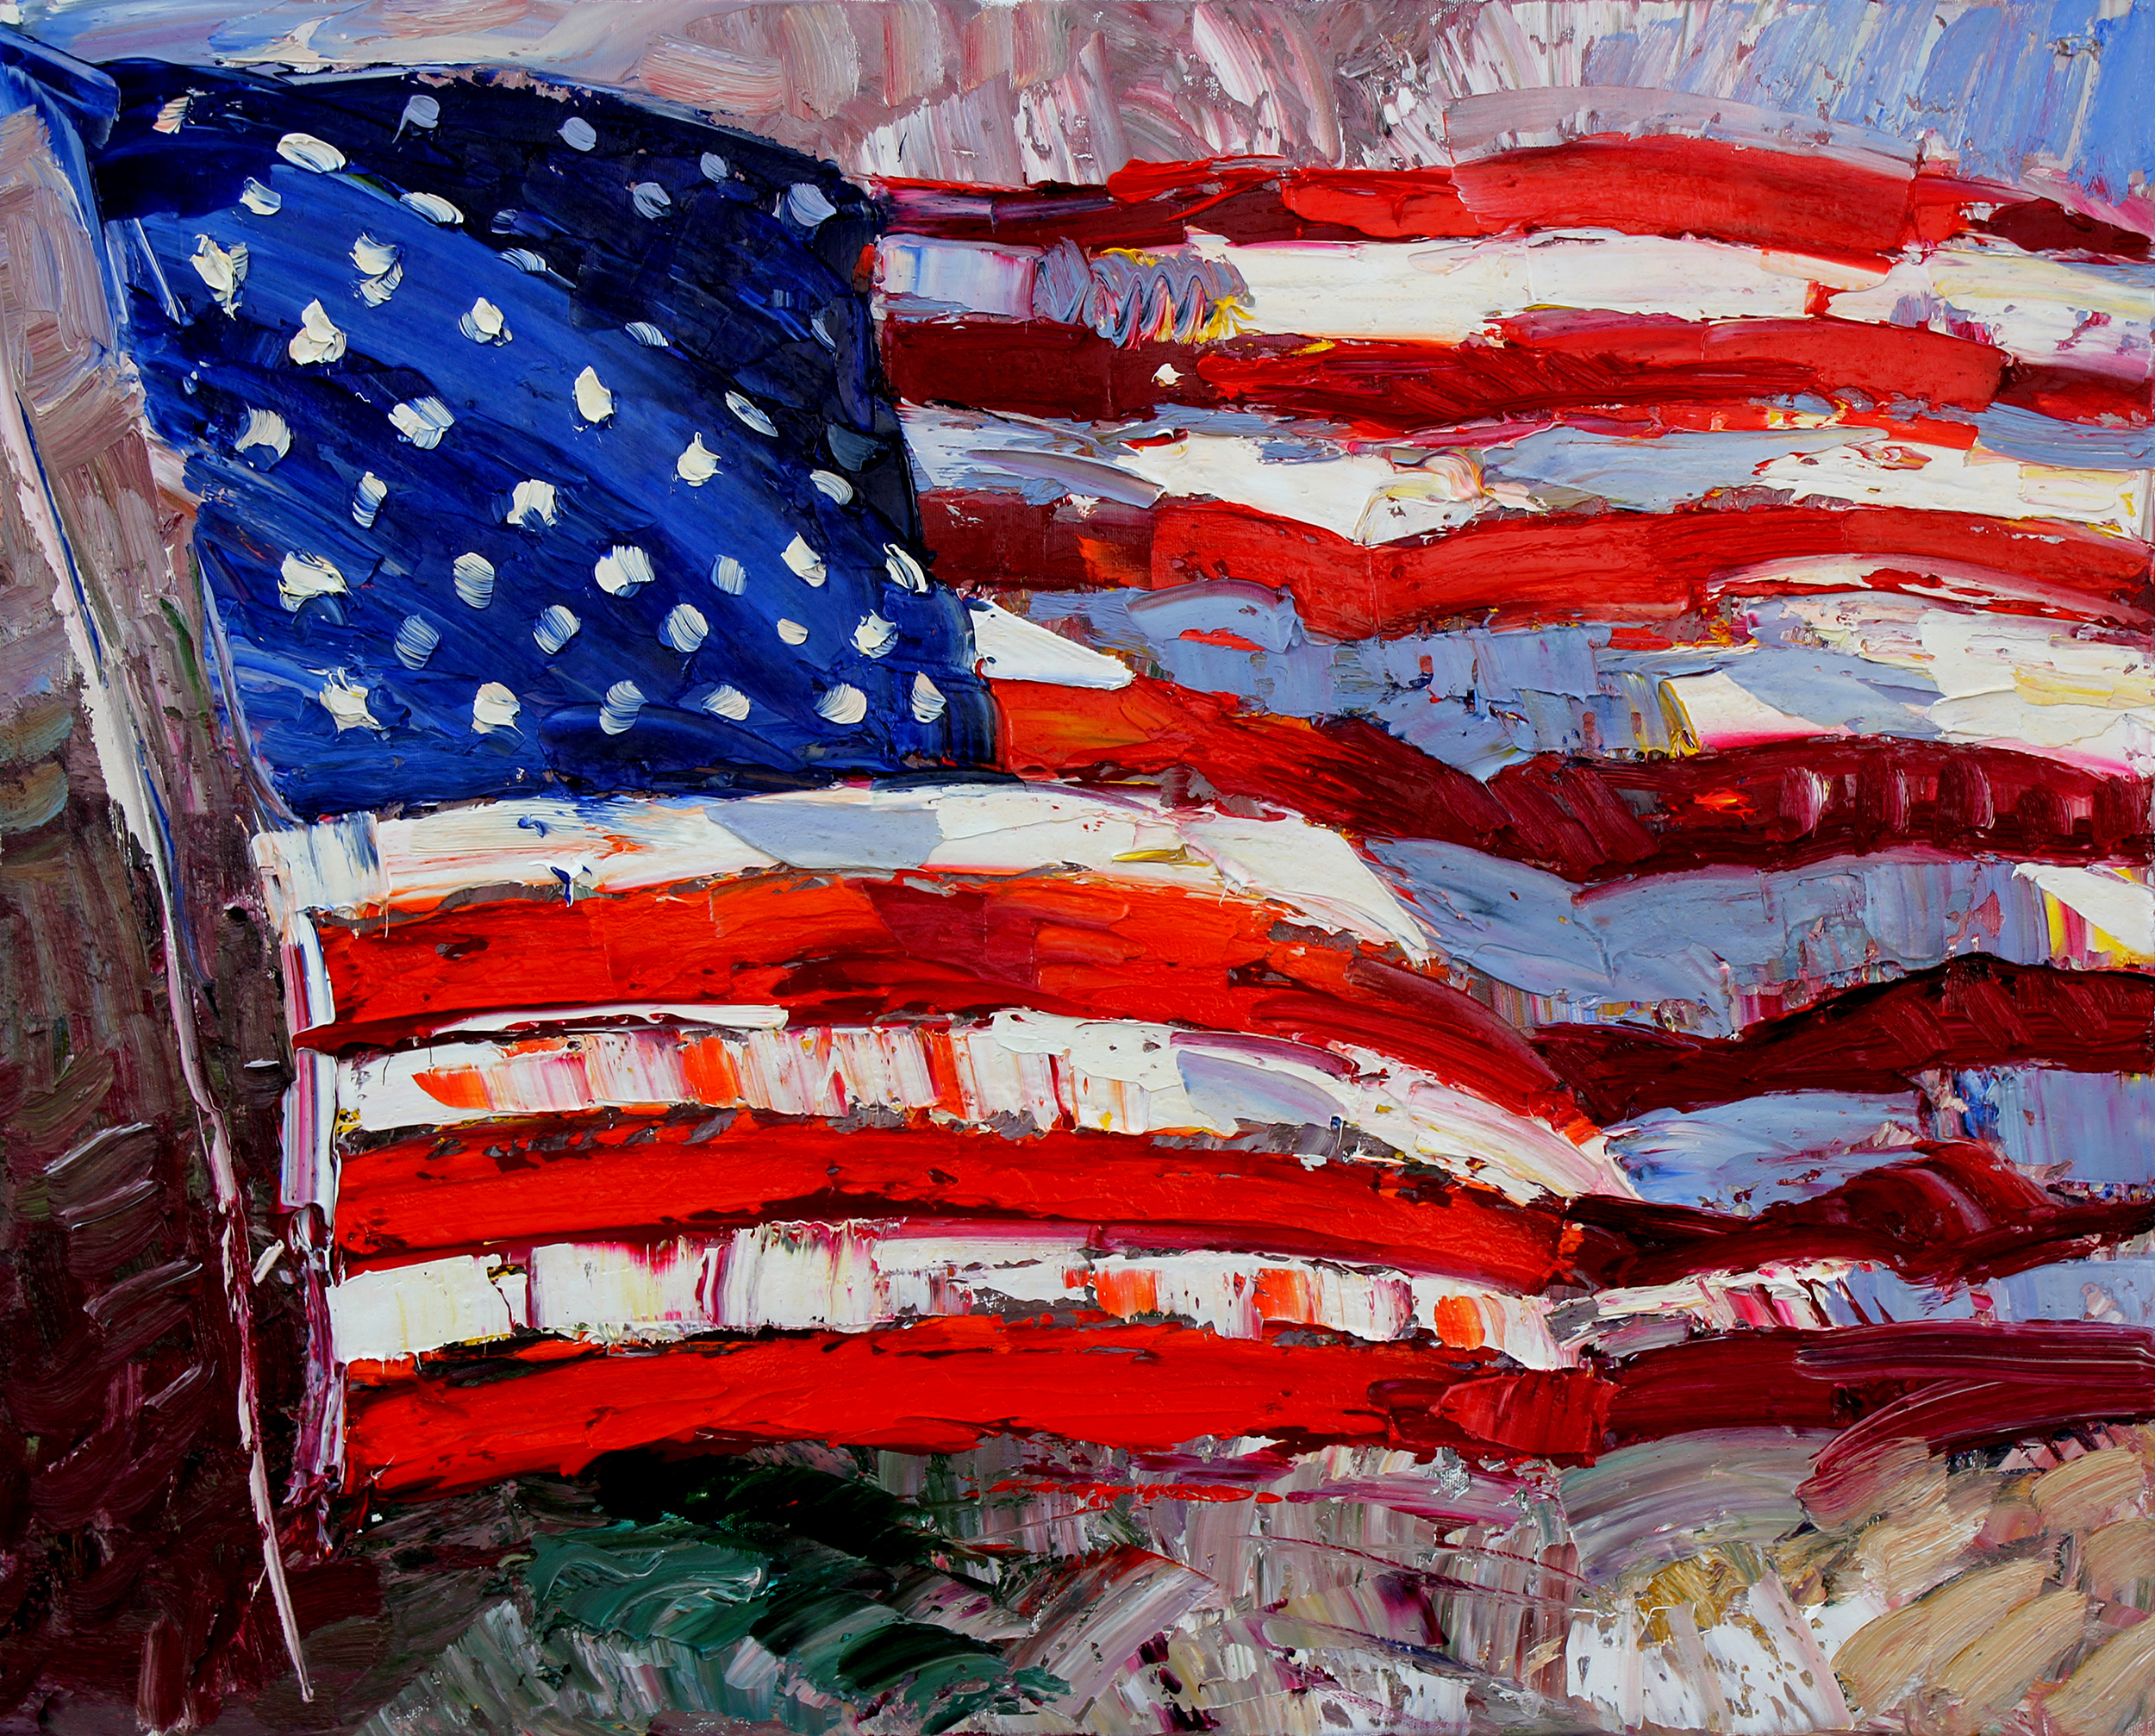 red_white_and_blue_24x30.jpg